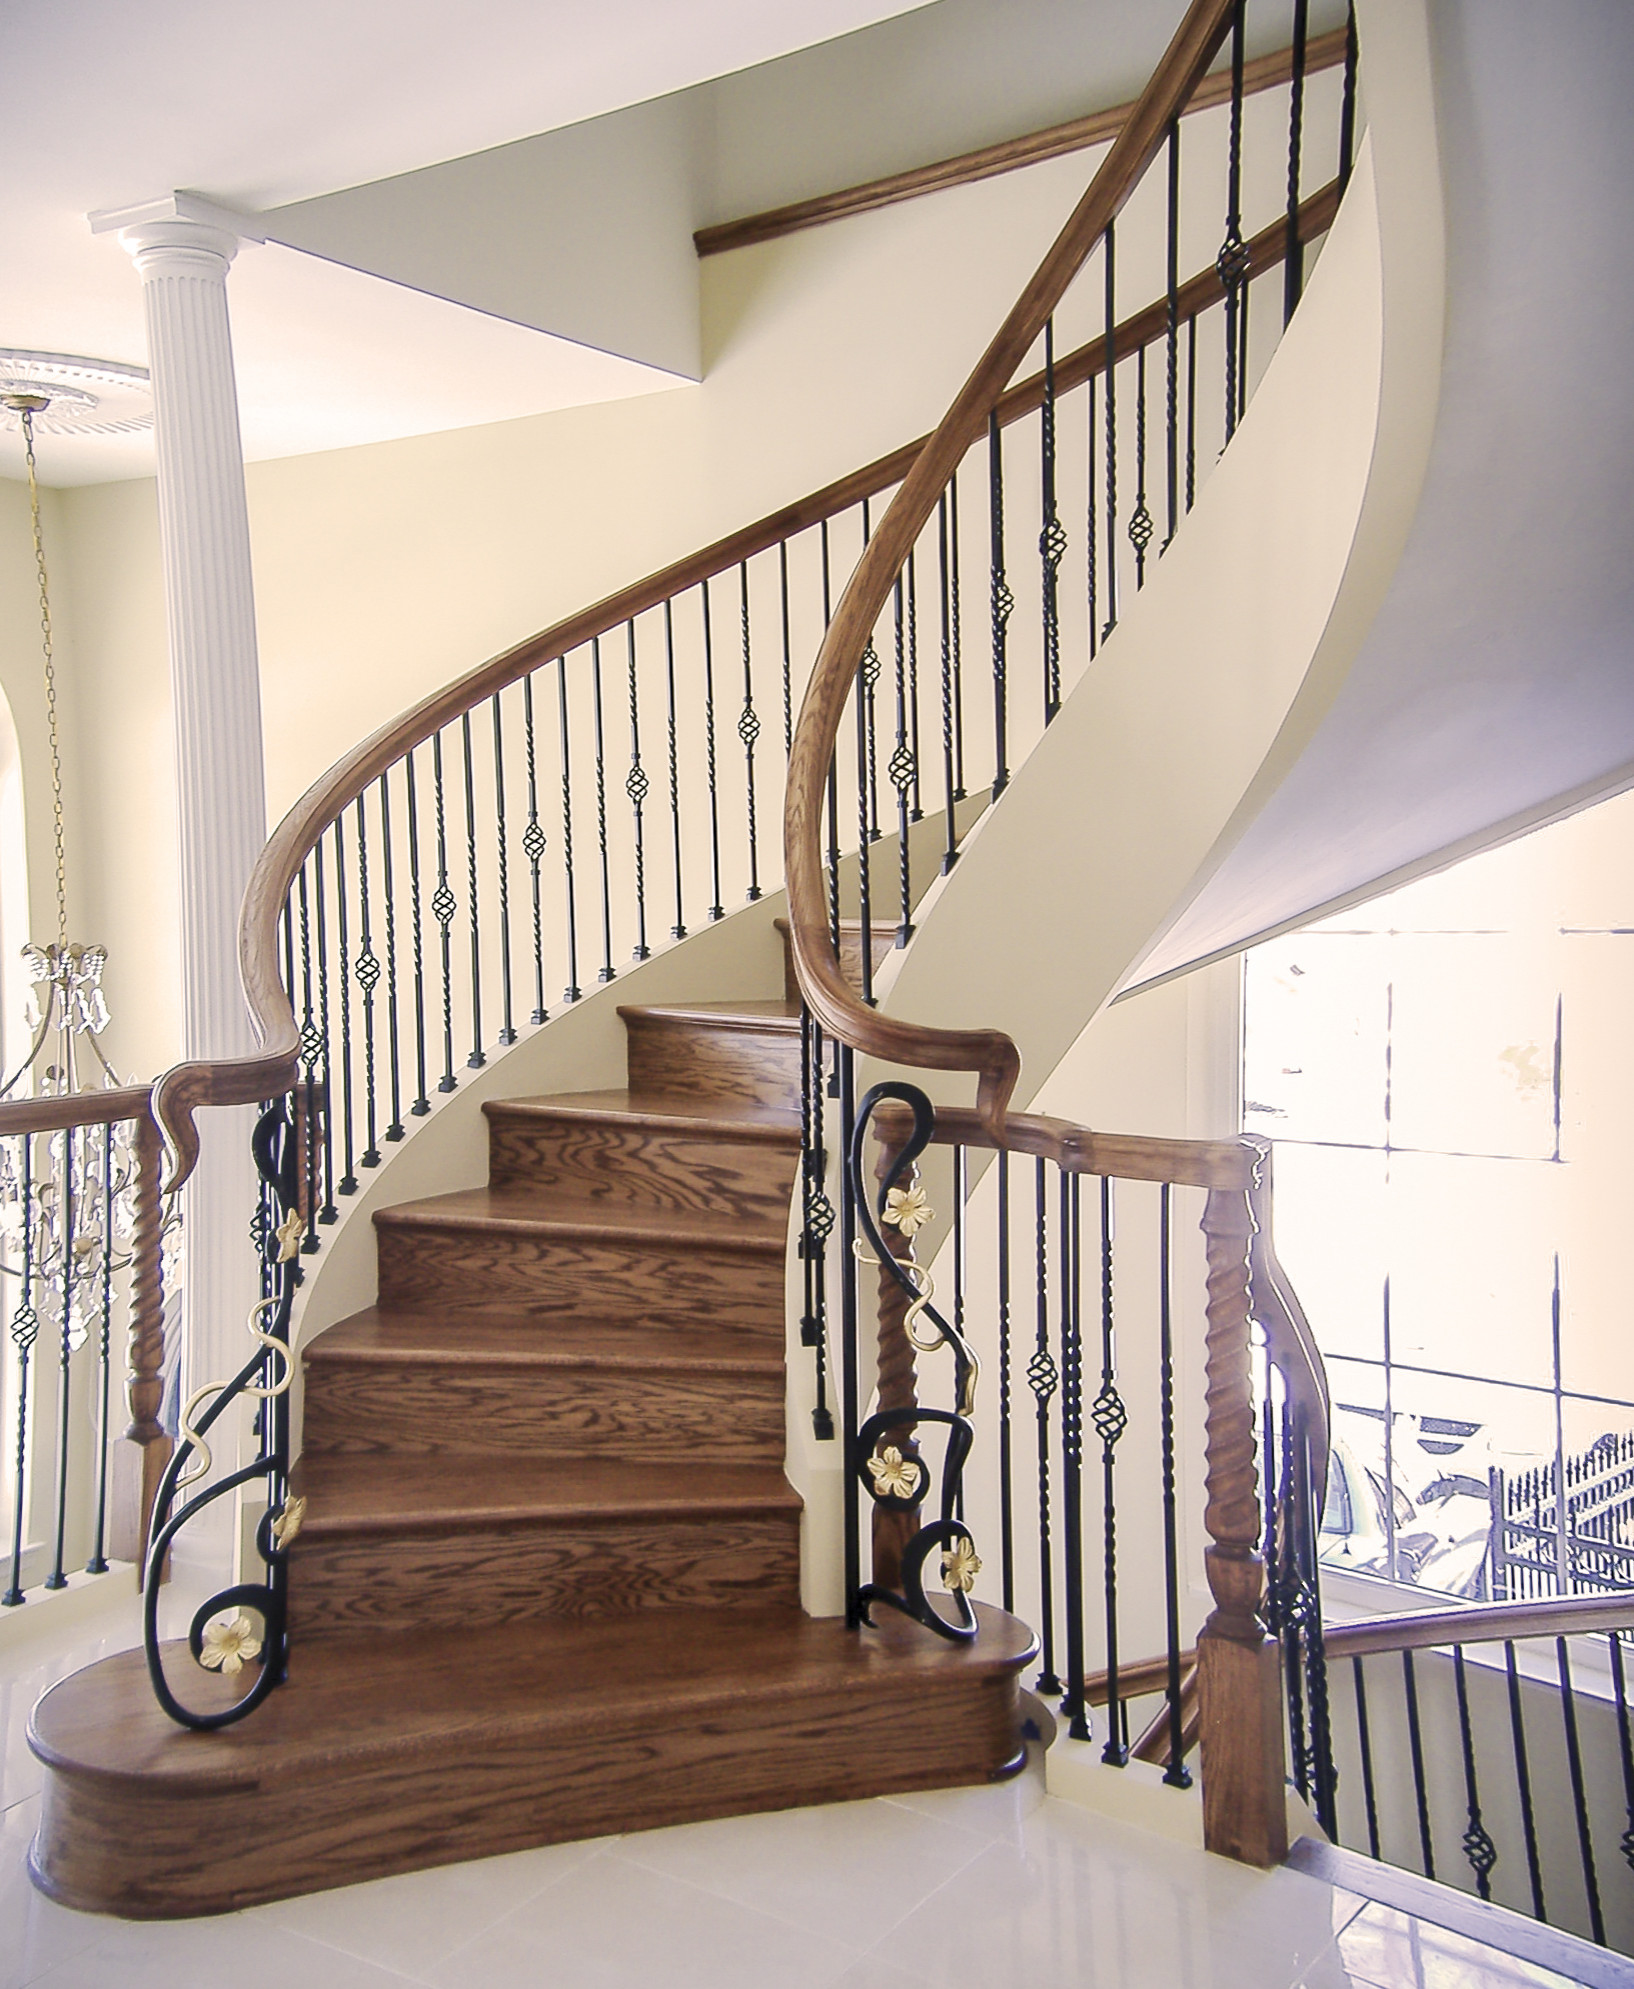 11_Custom Curved Handrail System and Stairs, Ashburn VA 20176